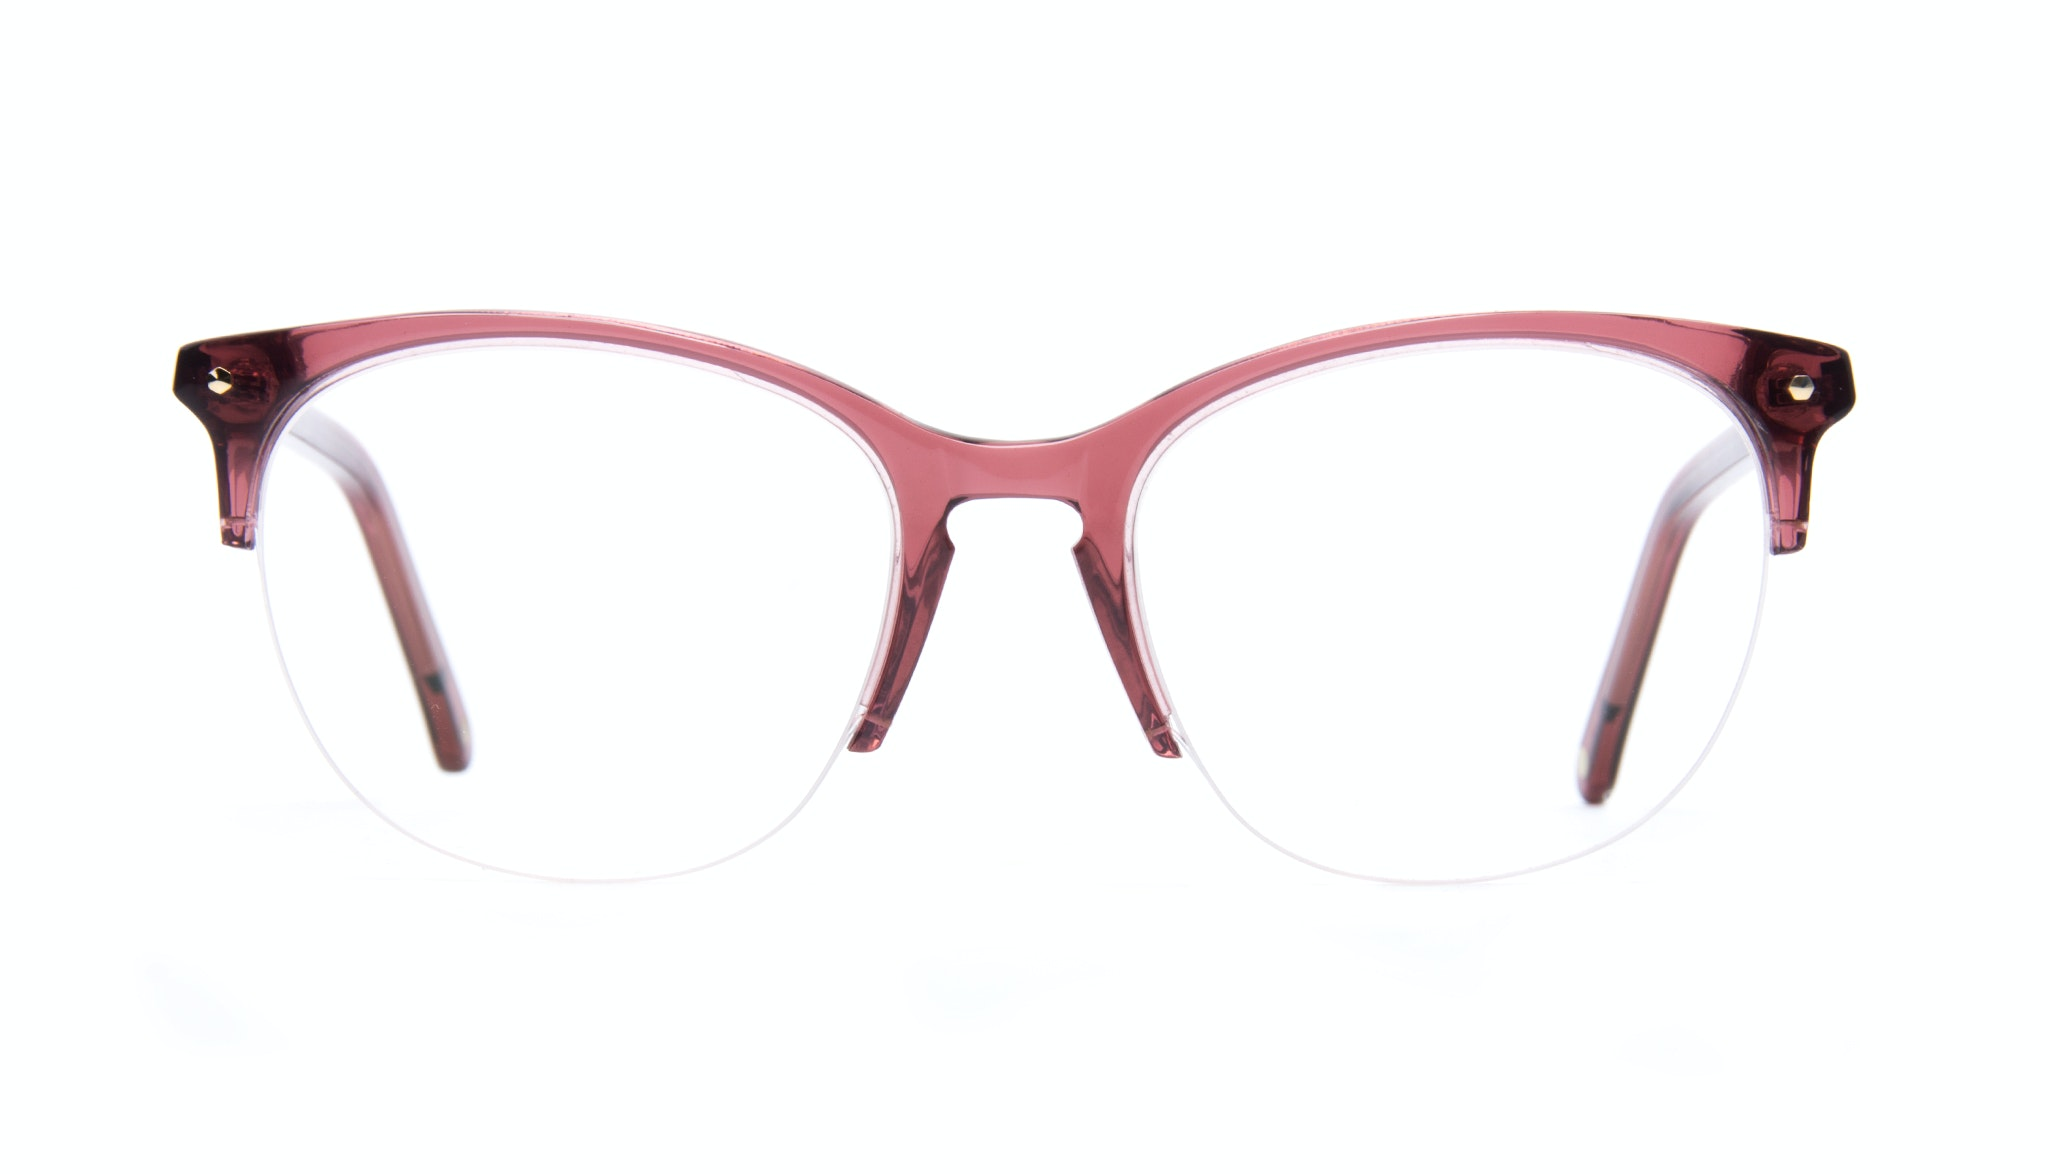 Affordable Fashion Glasses Rectangle Round Eyeglasses Women Nadine Light Winegum